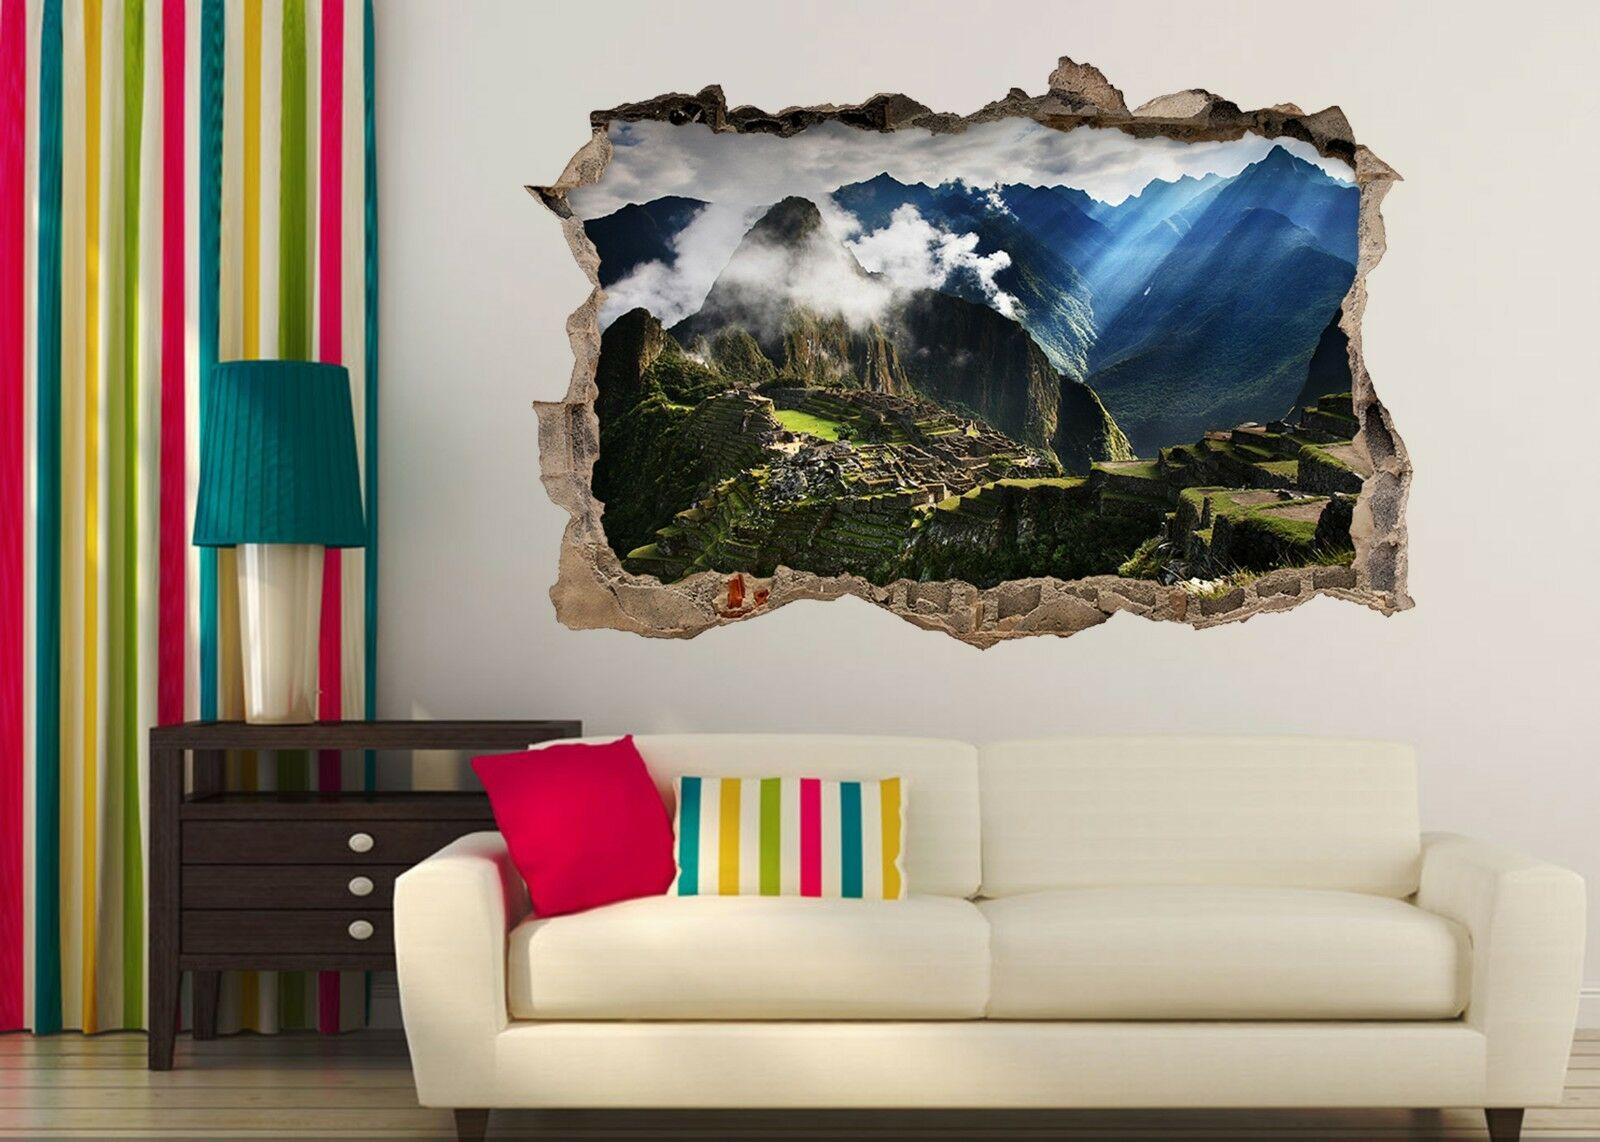 3D Inca Scenario Impero Parete Murales Adesivi Decal Sfondamento AJ WALLPAPER IT